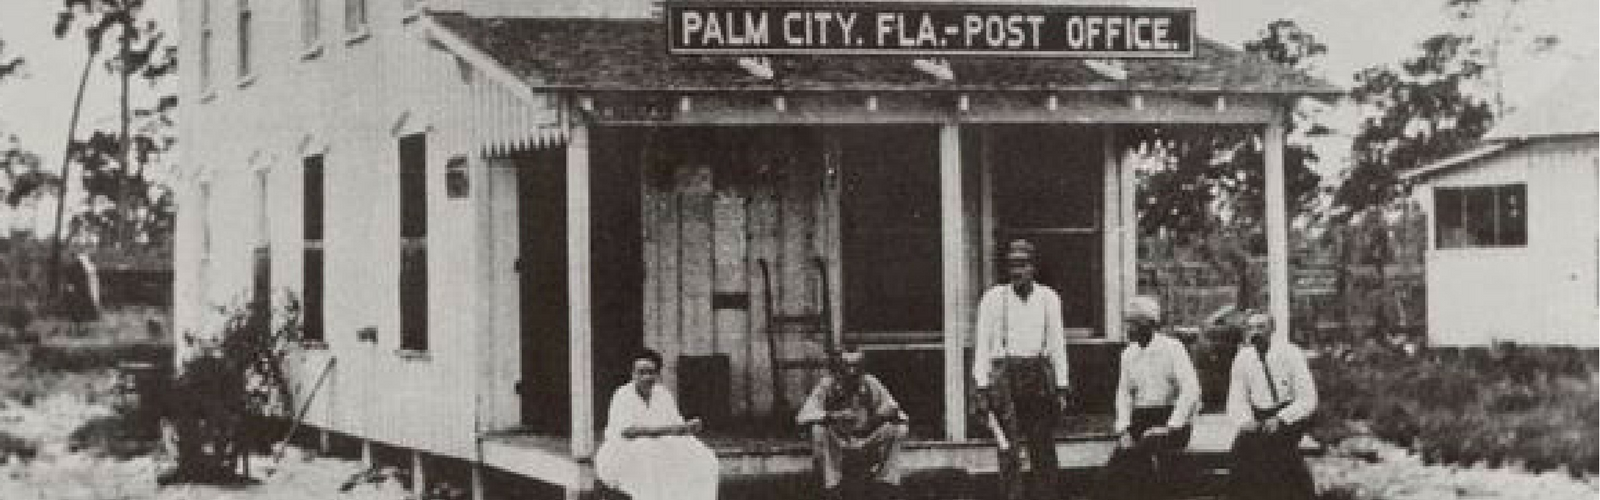 The History of Palm City